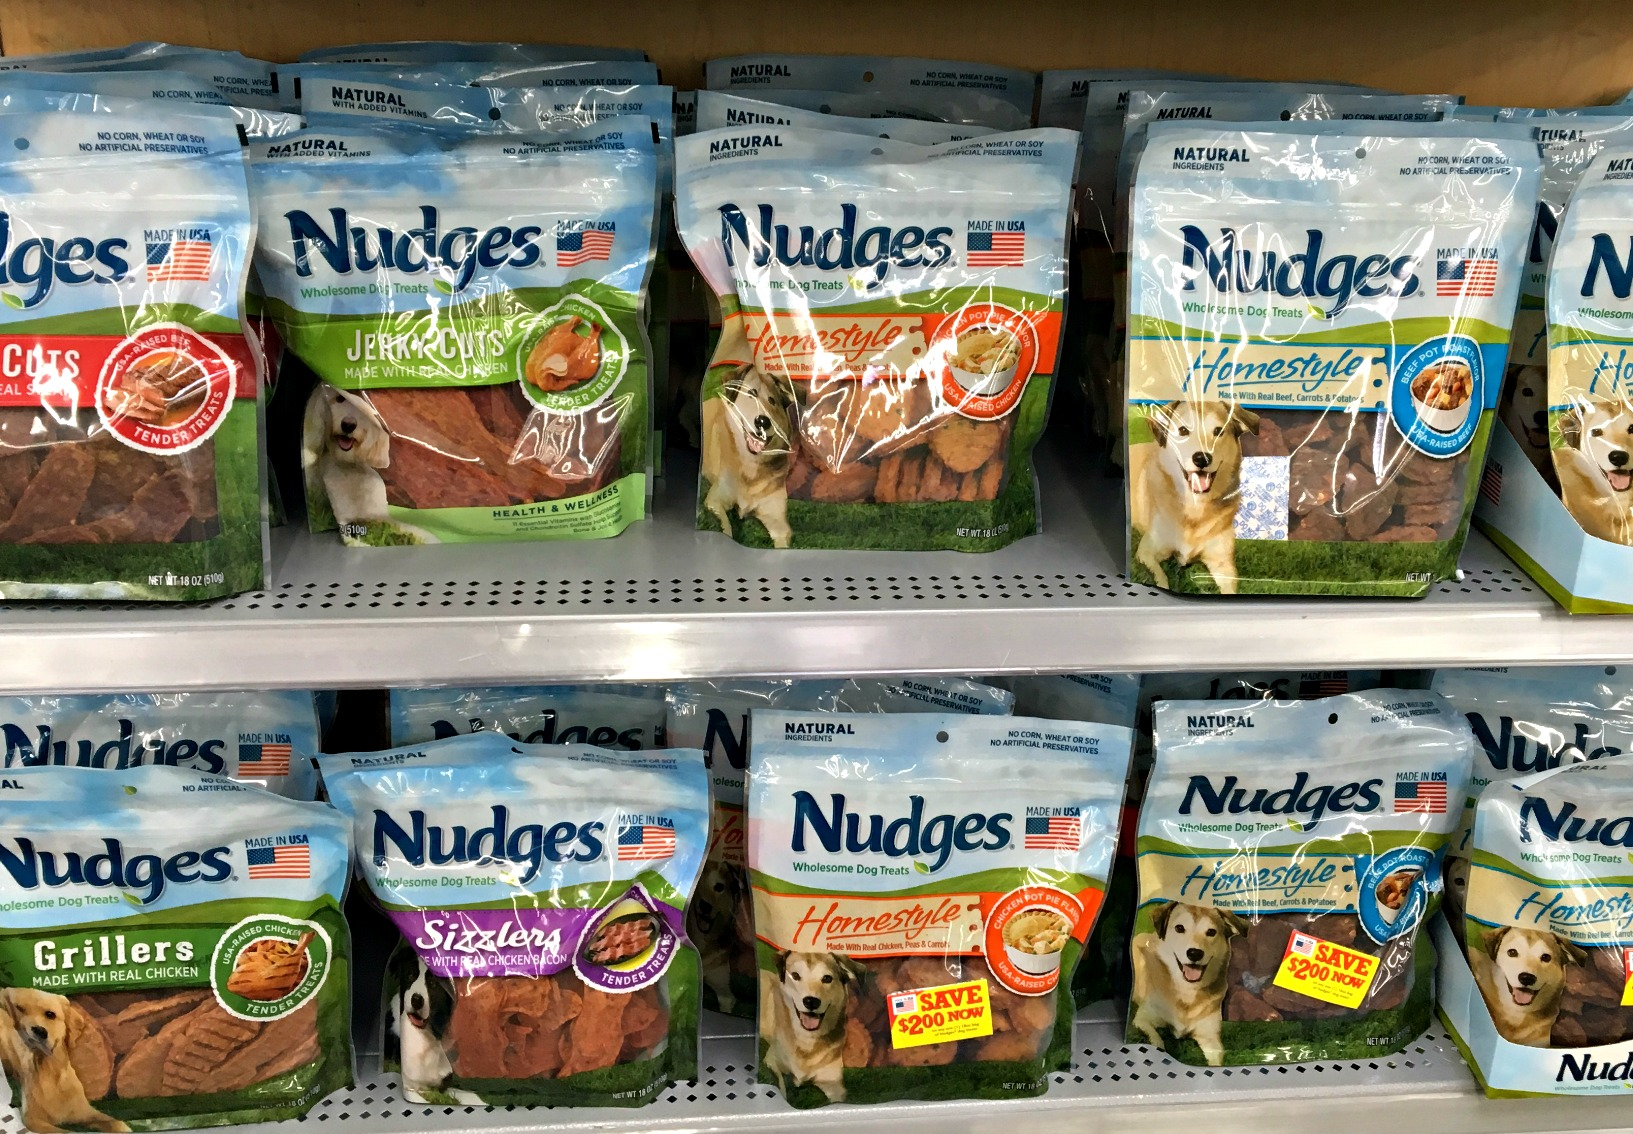 Nudges Wholesome Dog Treats #NudgeThemBack